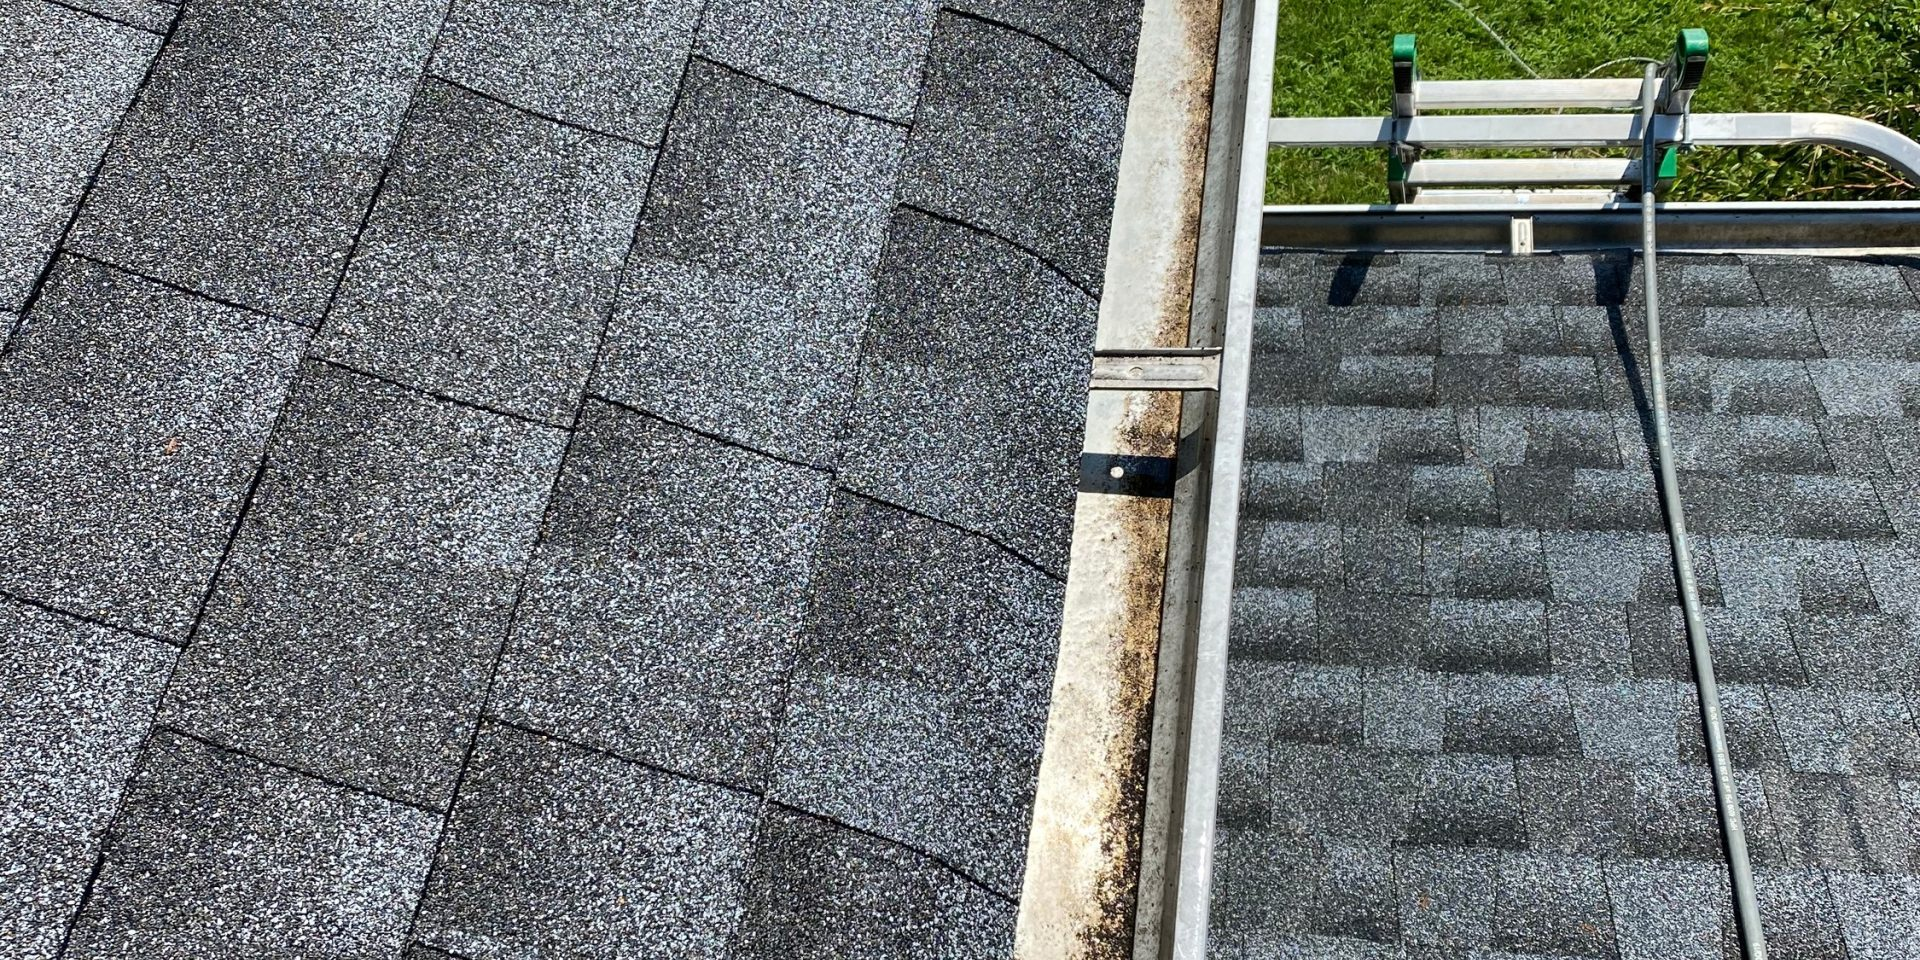 gutters cleaned with ladder